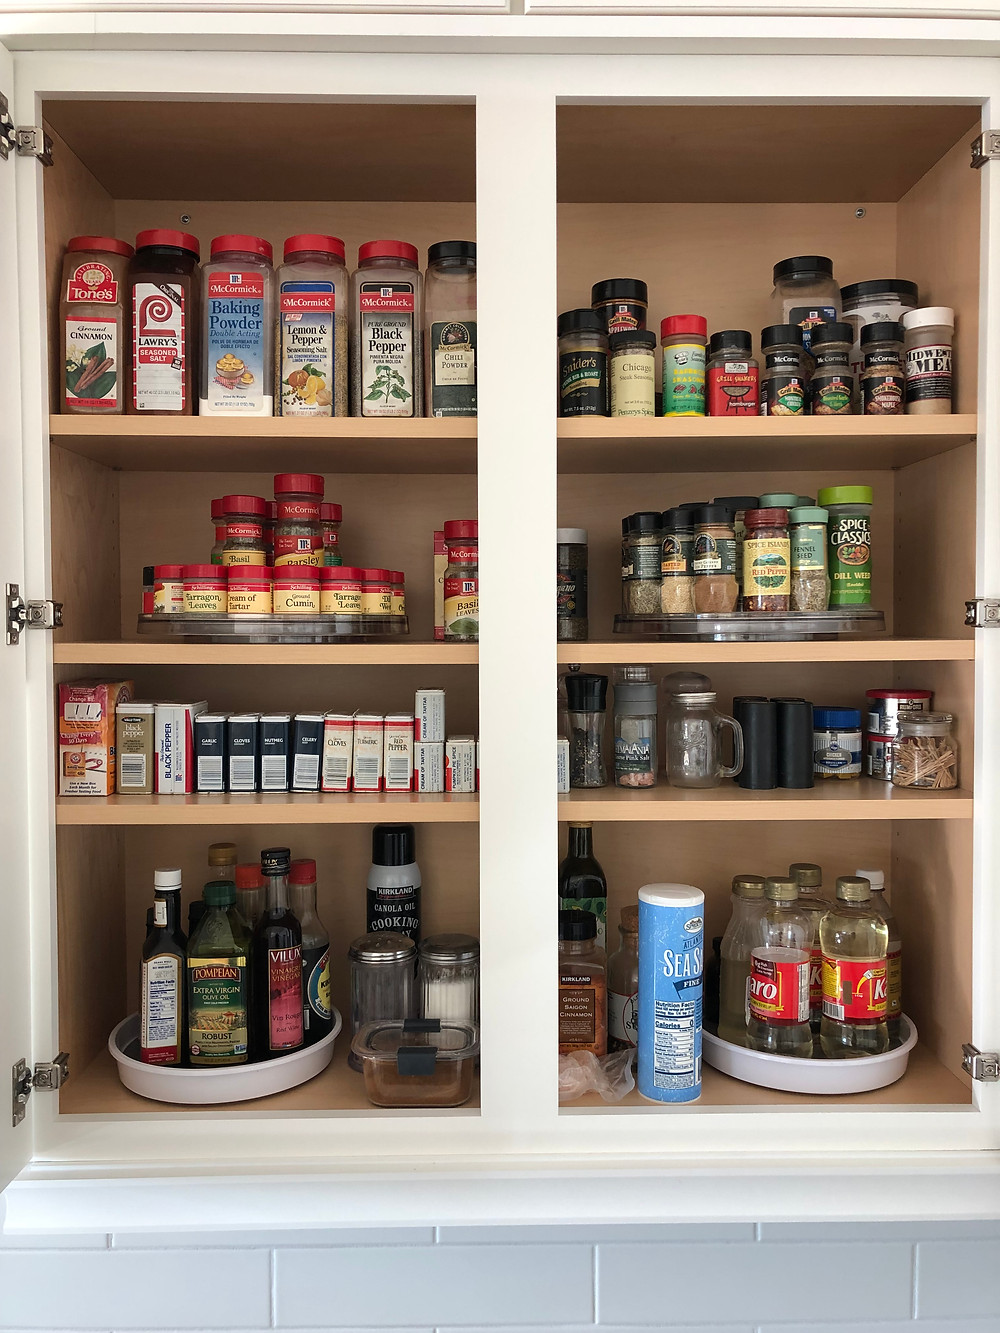 Organizing spices and seasonings